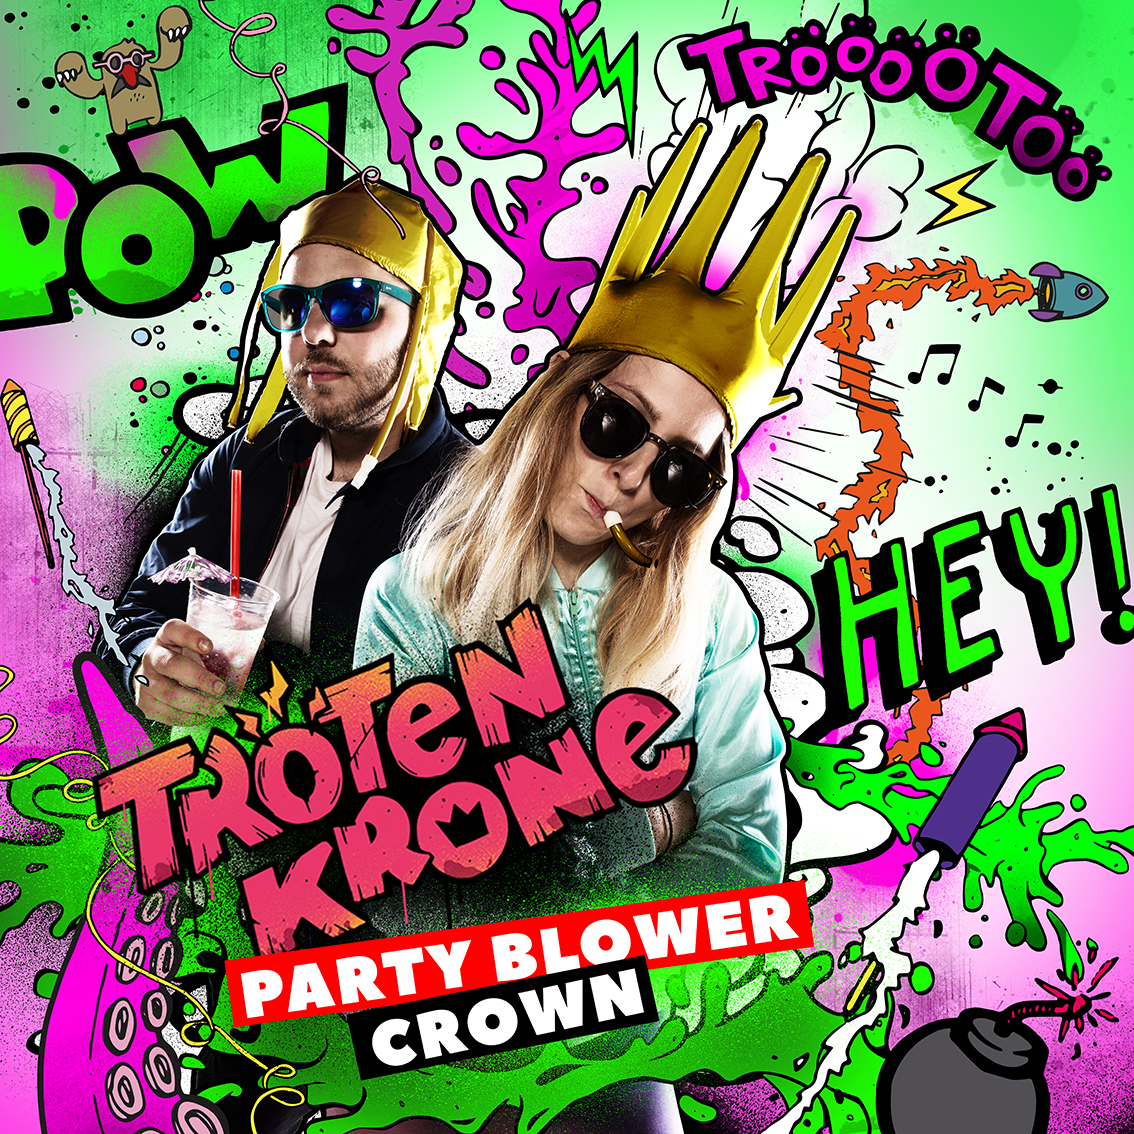 party blower crown party horn crown trötenkrone.jpg